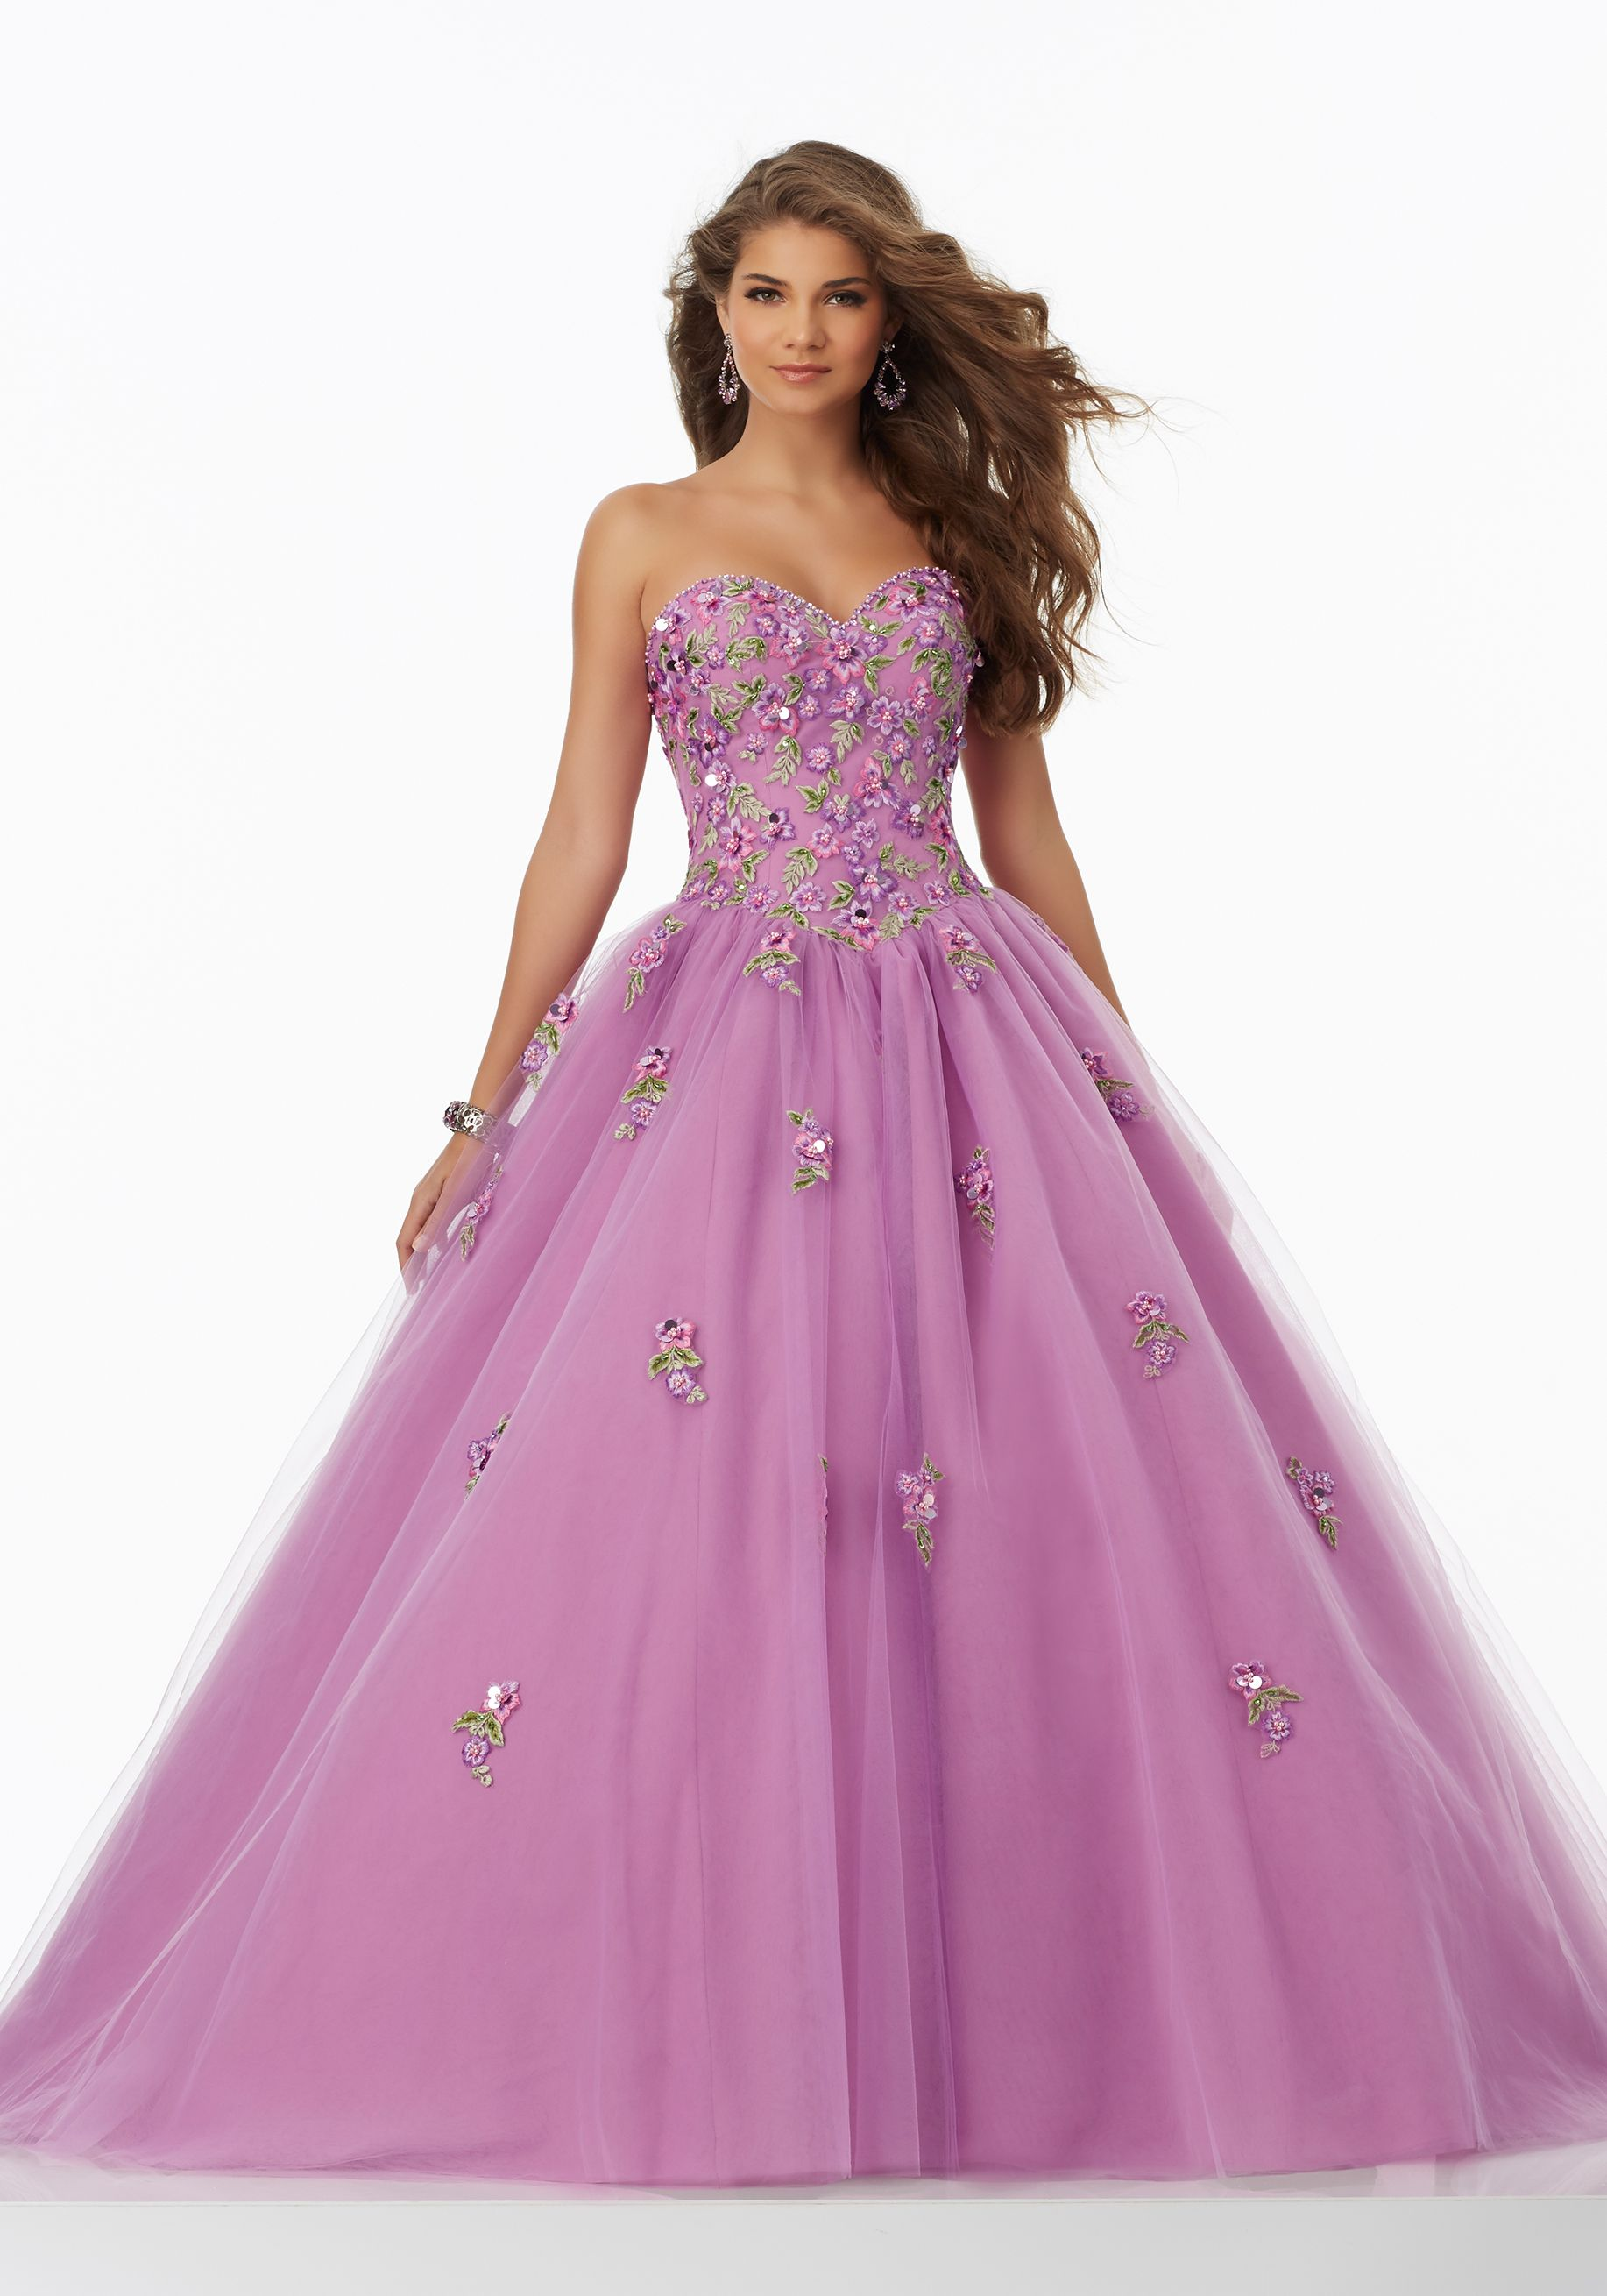 Mori Lee Prom Dress Floral | Ball Gown Prom Dresses | Pinterest ...